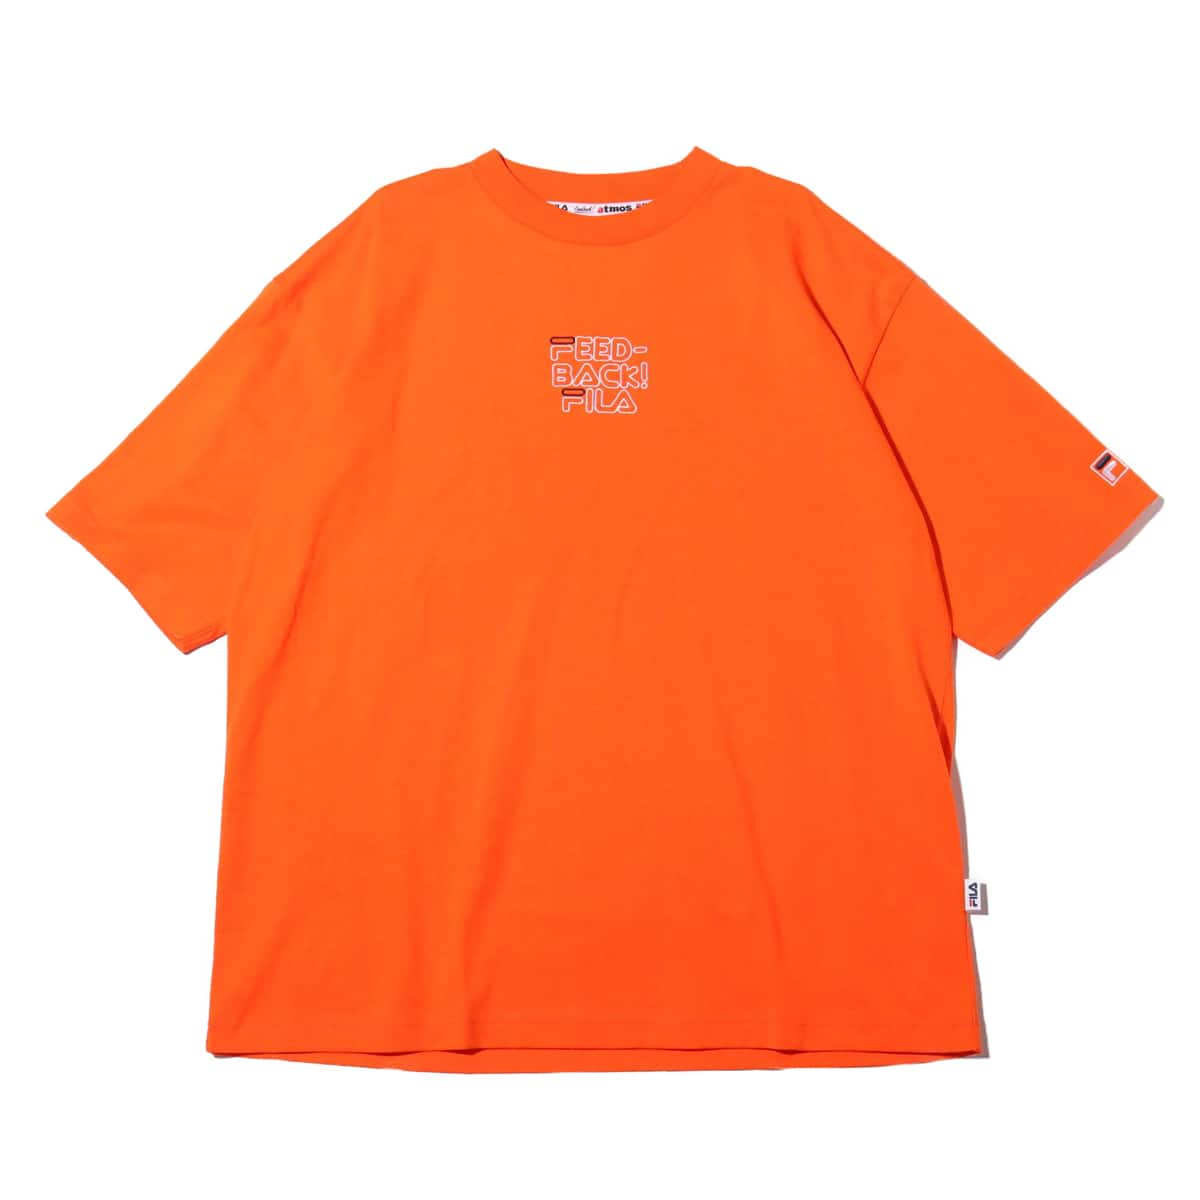 Feedback!×FILA×atmos pink EMBRO T-SHIRT ORANGE 19SU-S_photo_large